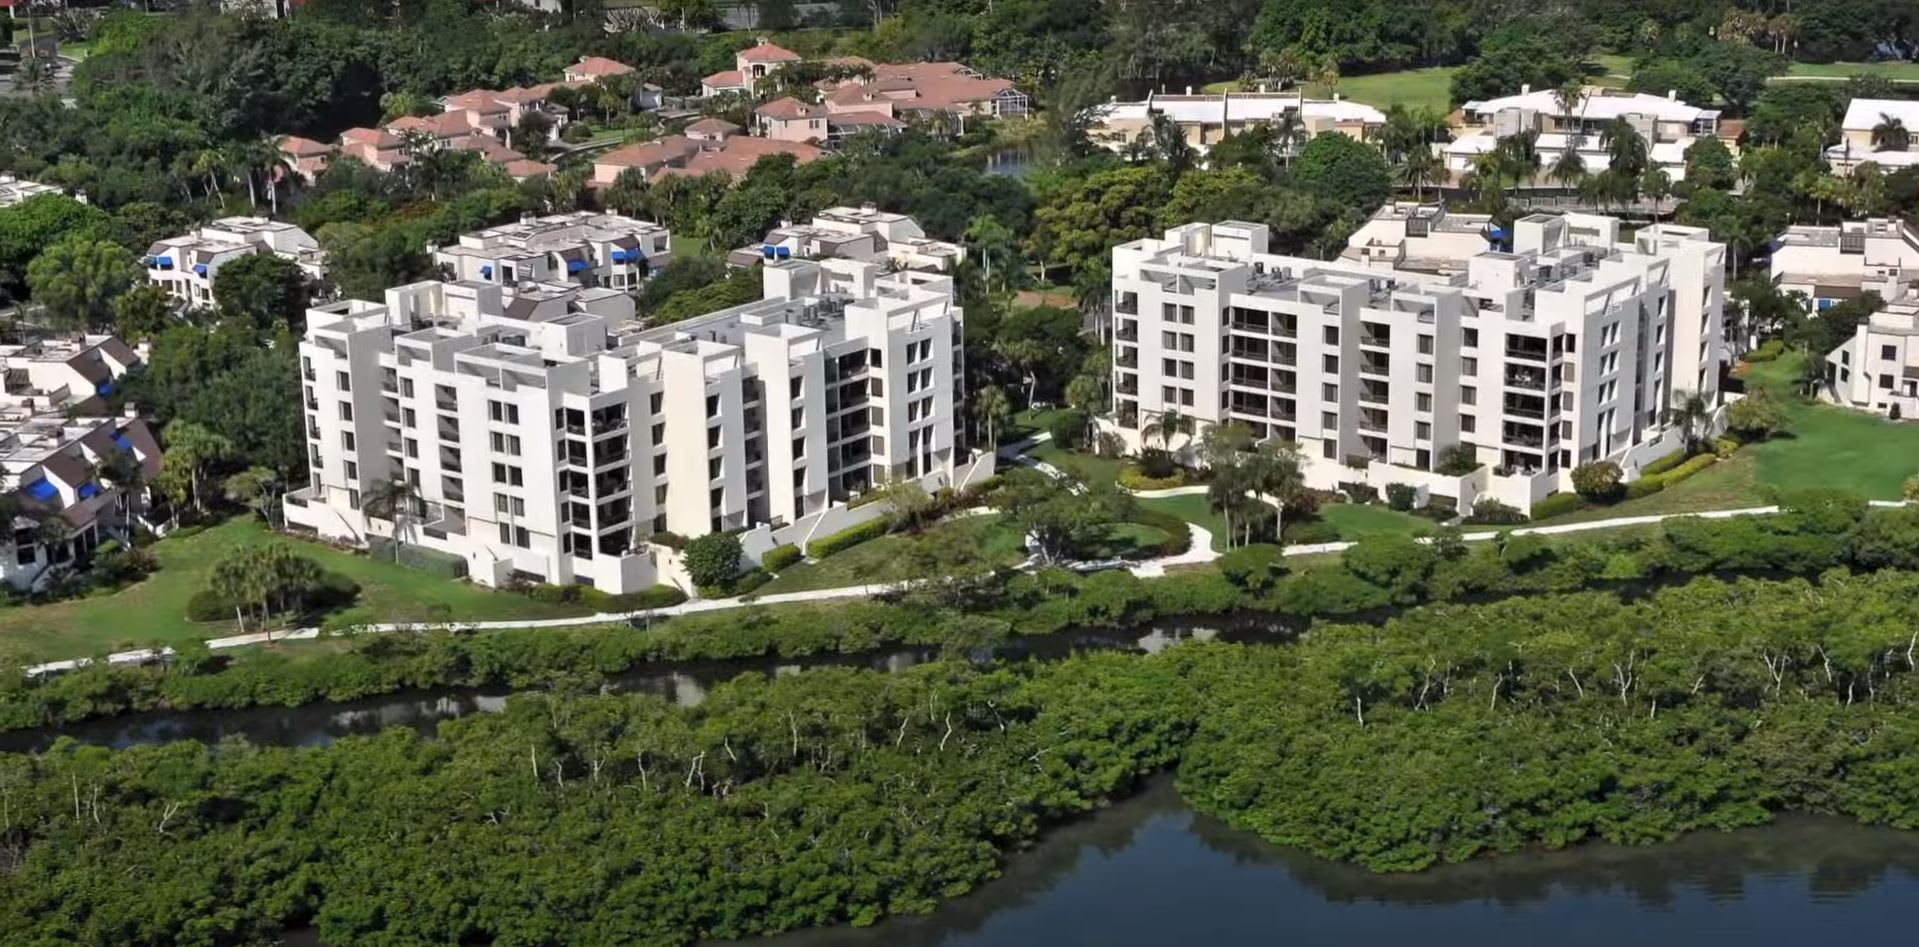 2016 Harbourside Dr #344/345, Longboat Key, Florida 34228 Fairway Bay, For Sale By Roger Pettingell video preview